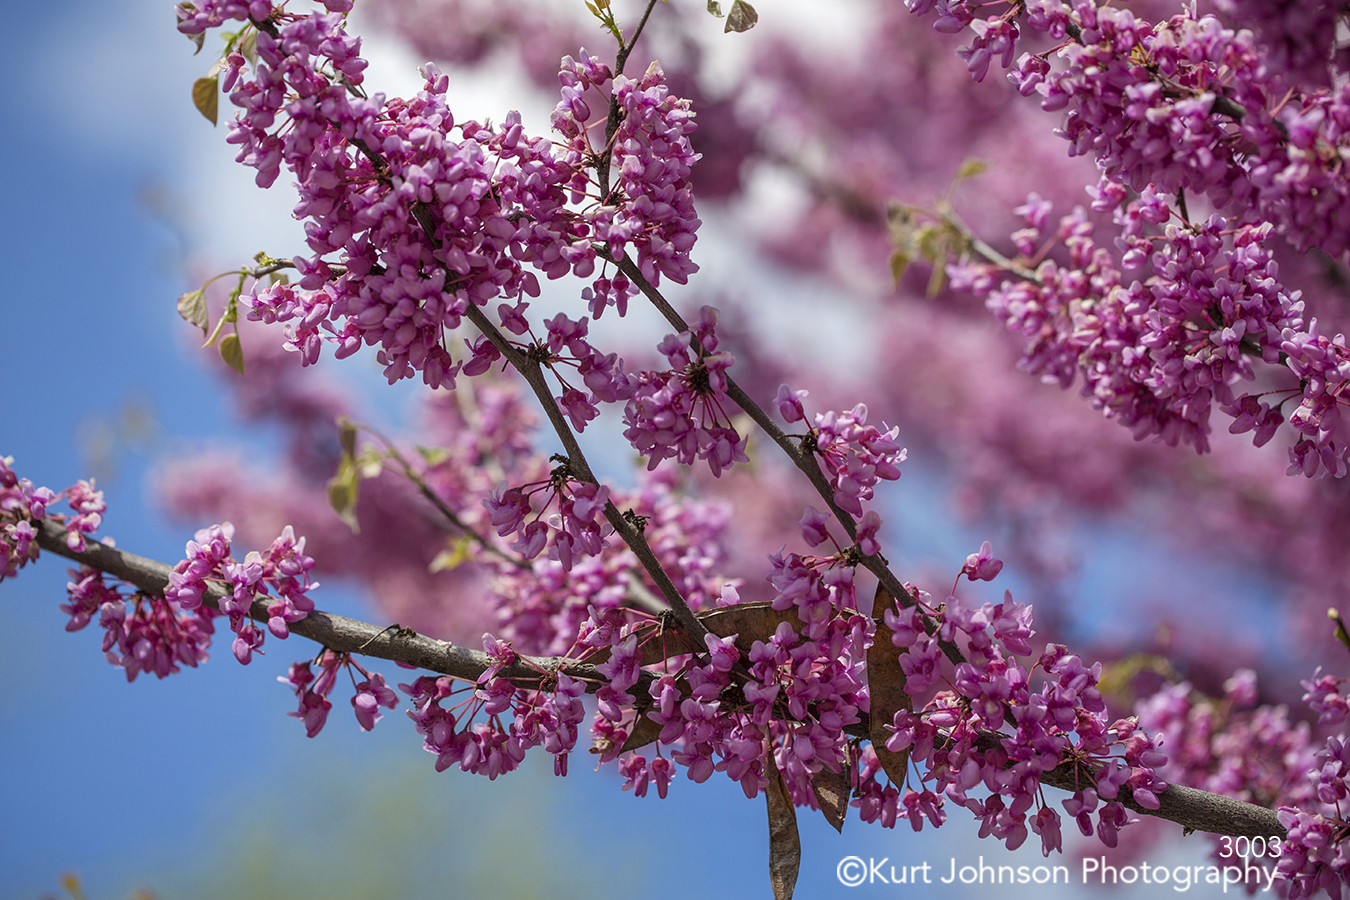 pink purple spring blossom buds bloom tree branch branches close up detail